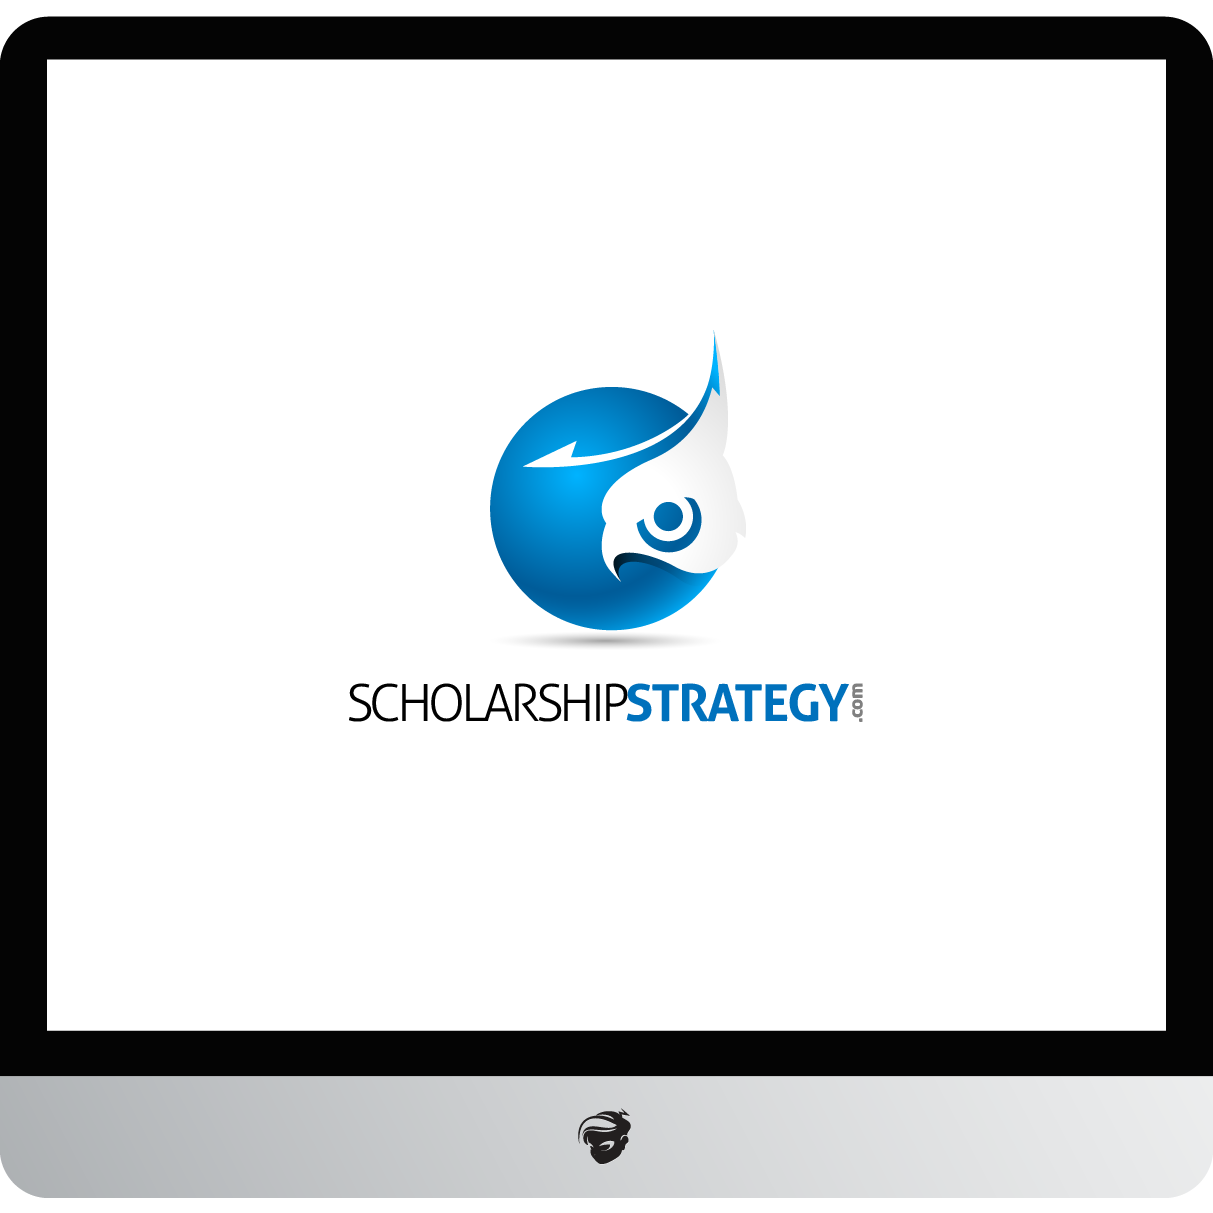 Logo Design by zesthar - Entry No. 35 in the Logo Design Contest Captivating Logo Design for Scholarshipstrategy.com.